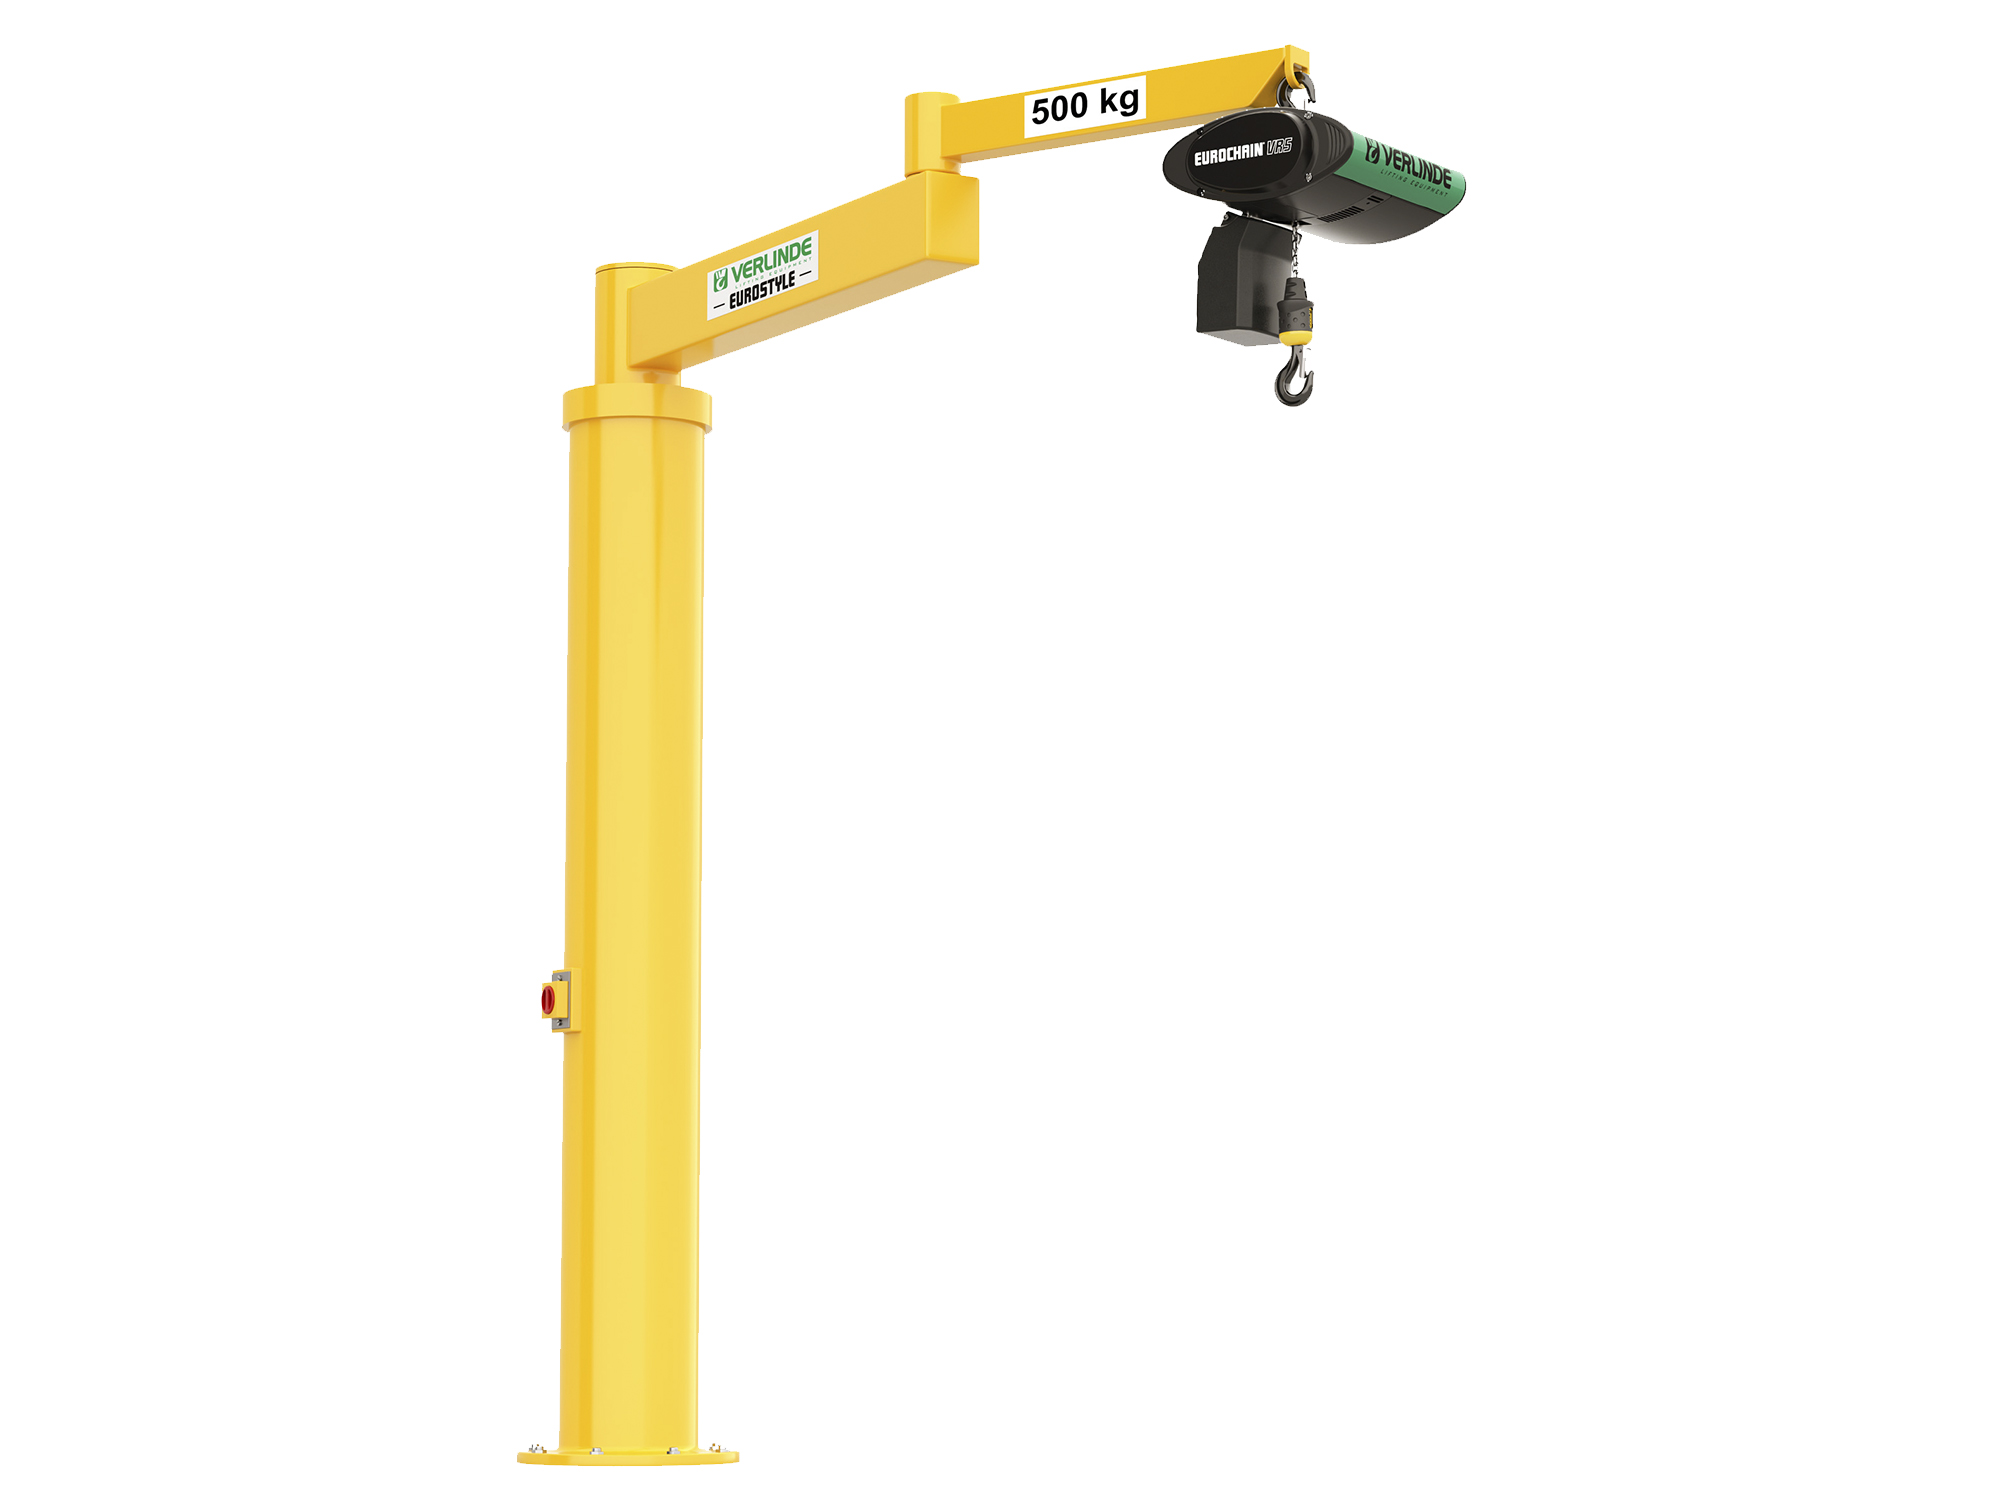 Free Standing Floor Mounted Articulated Jib Crane 1 000kg Lifting Capacity